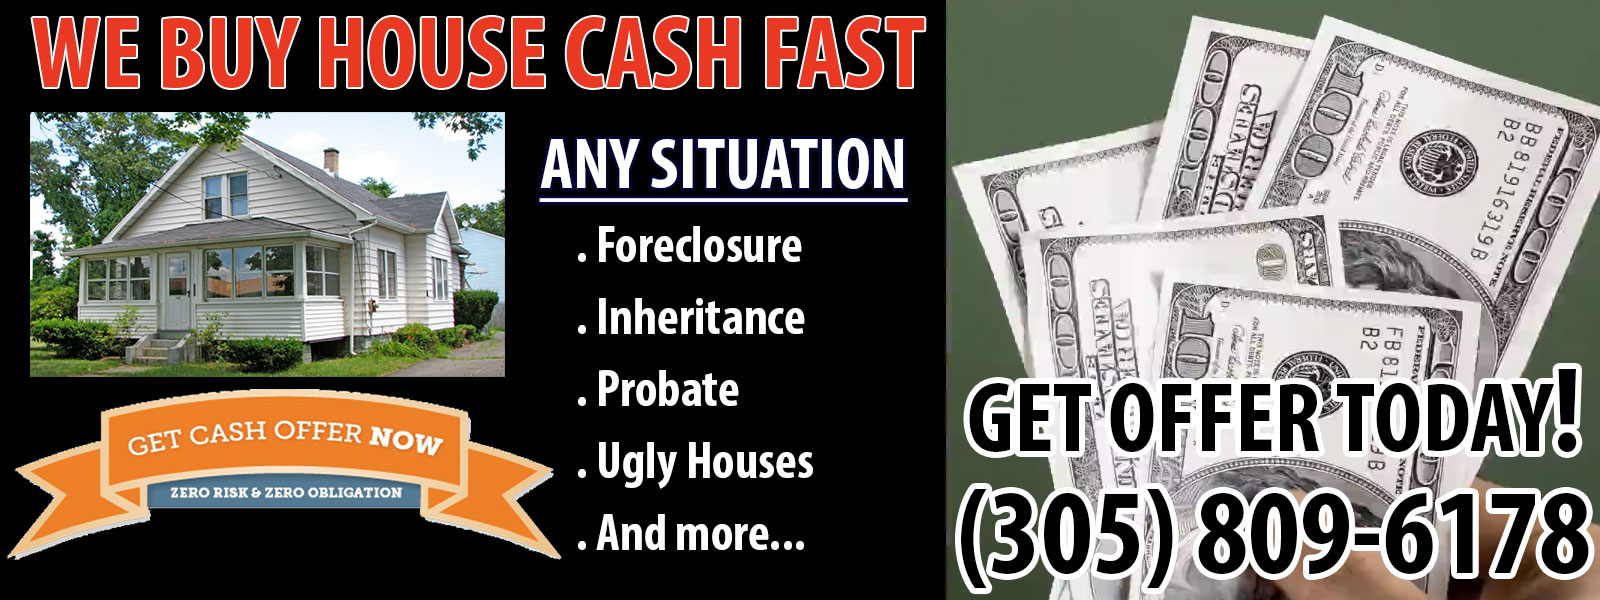 We Buy House Cash